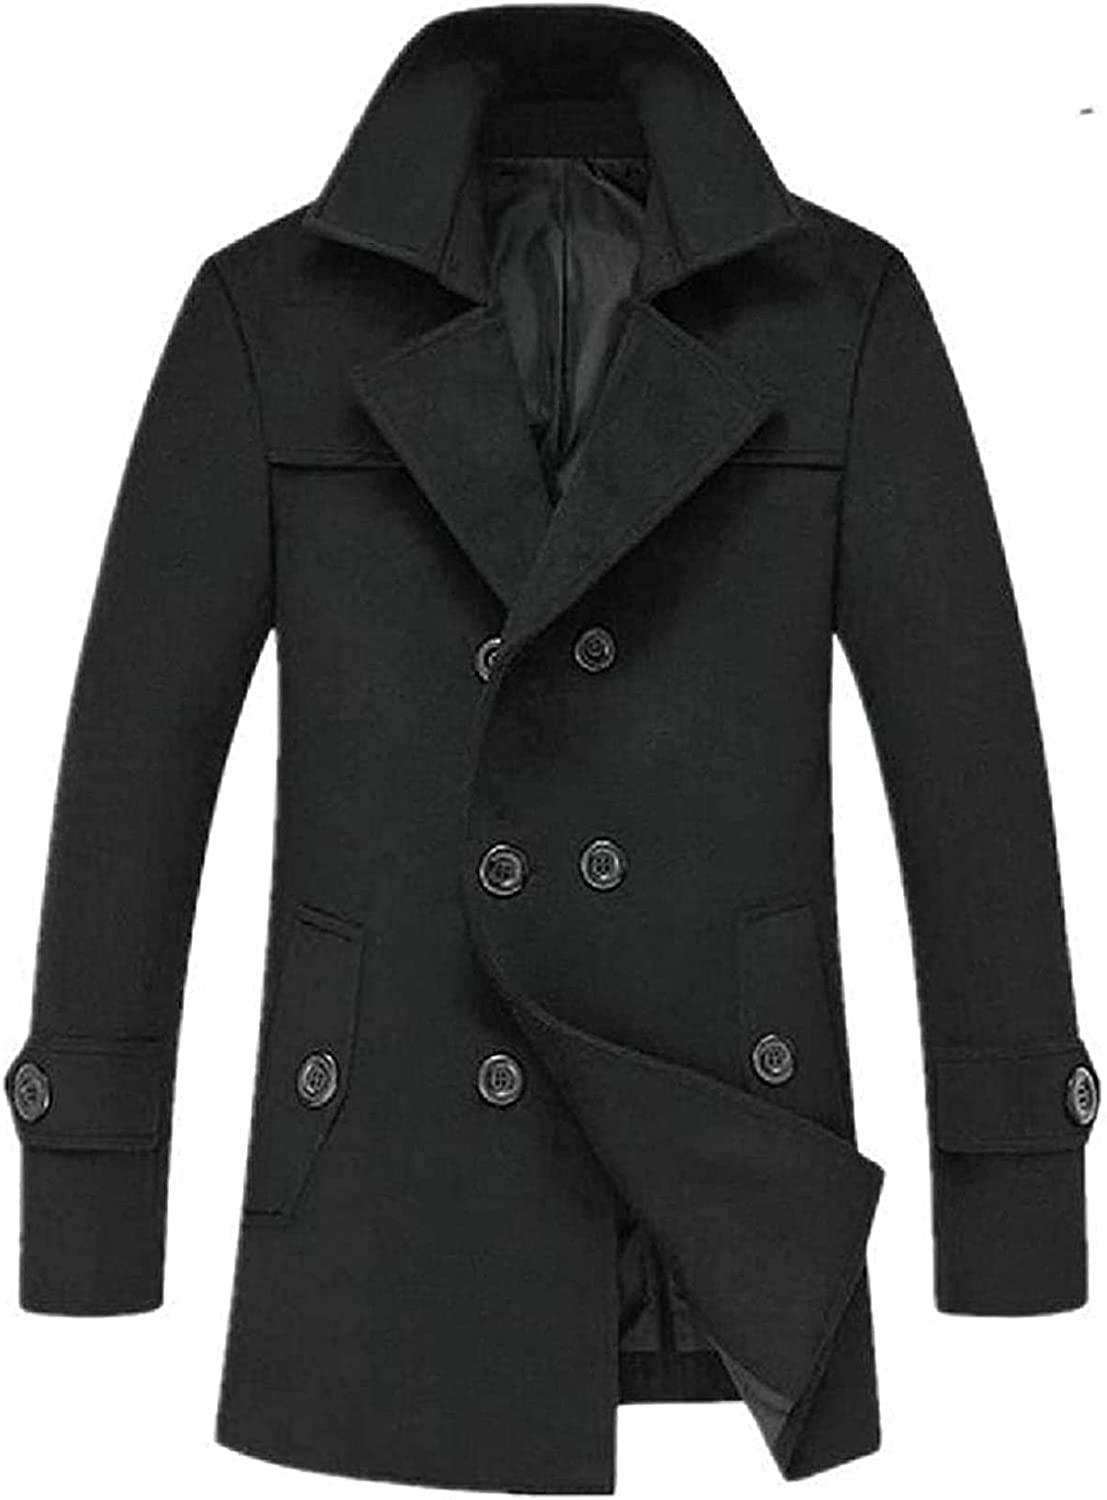 Mens Double-Breasted Wool-Blend Overcoat Winter Pea Coat